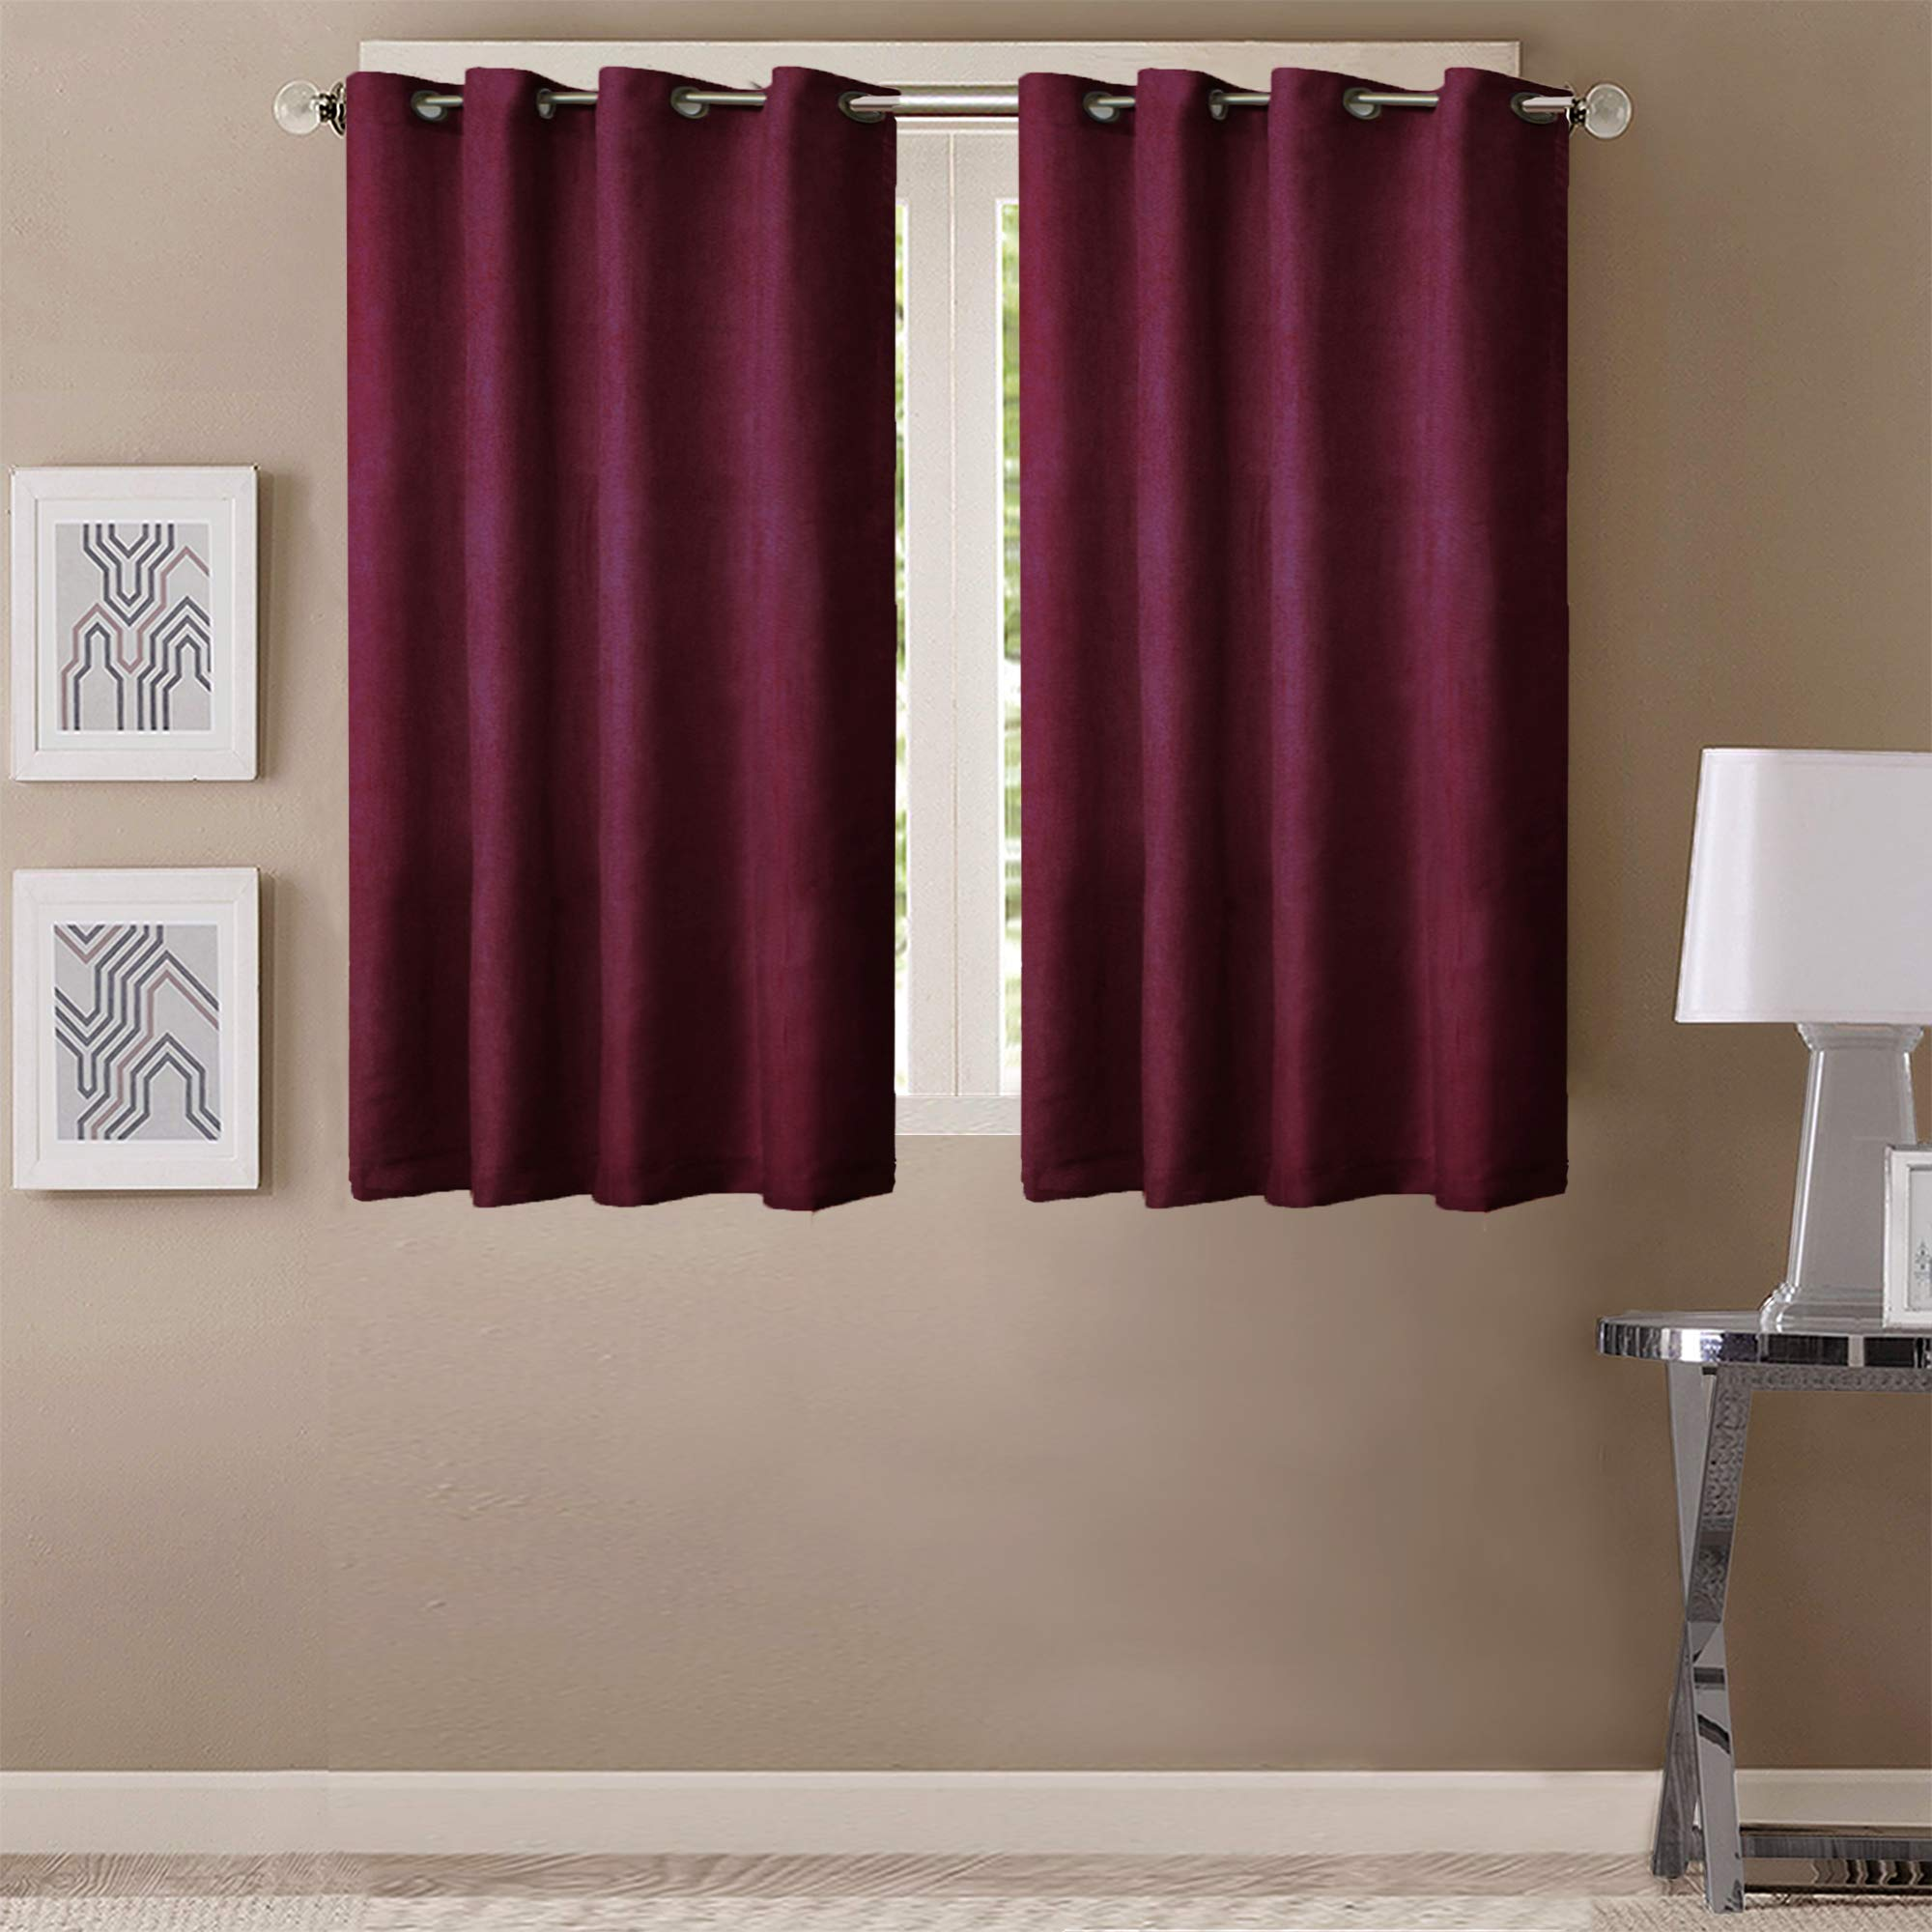 Queenzliving Elegant Solid Crushed Texture Curtain, Window 5 feet- Pack of 2, Maroon (B07YCPDTQJ) Amazon Price History, Amazon Price Tracker